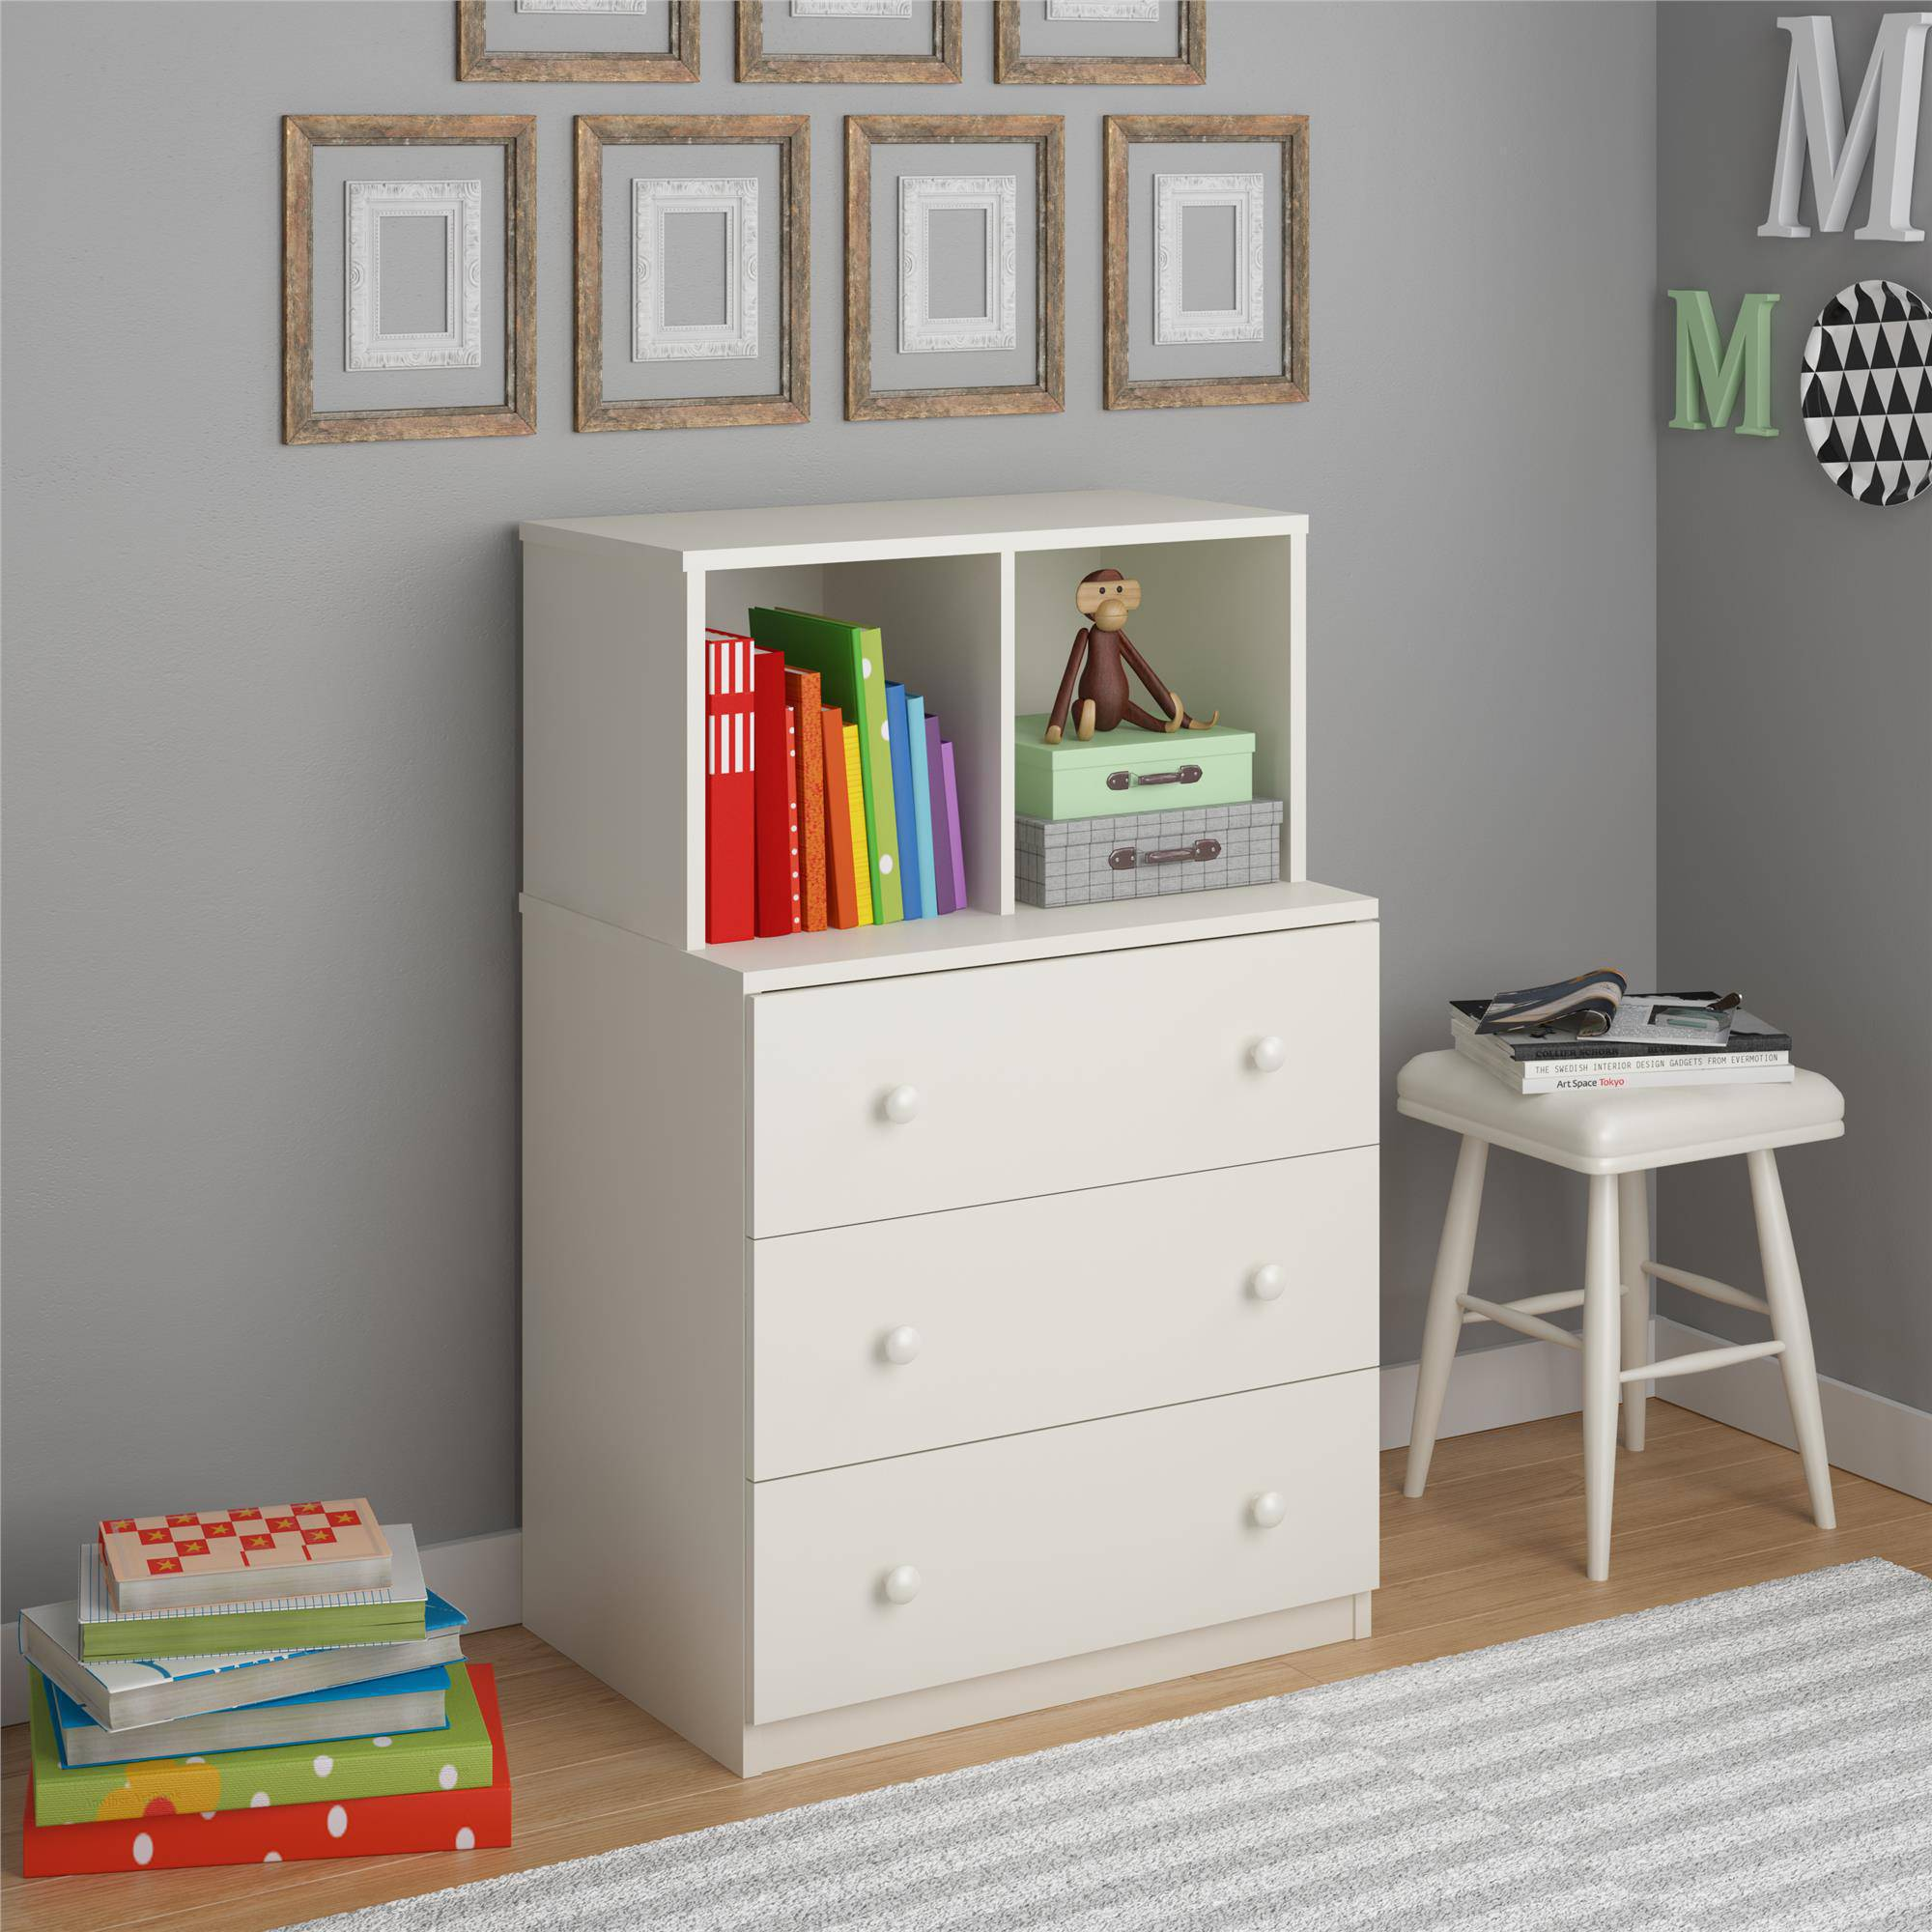 3 Drawer Dresser Cubby Storage Bins White Wood Bookcase Toy Chest Shelf  Cabinet